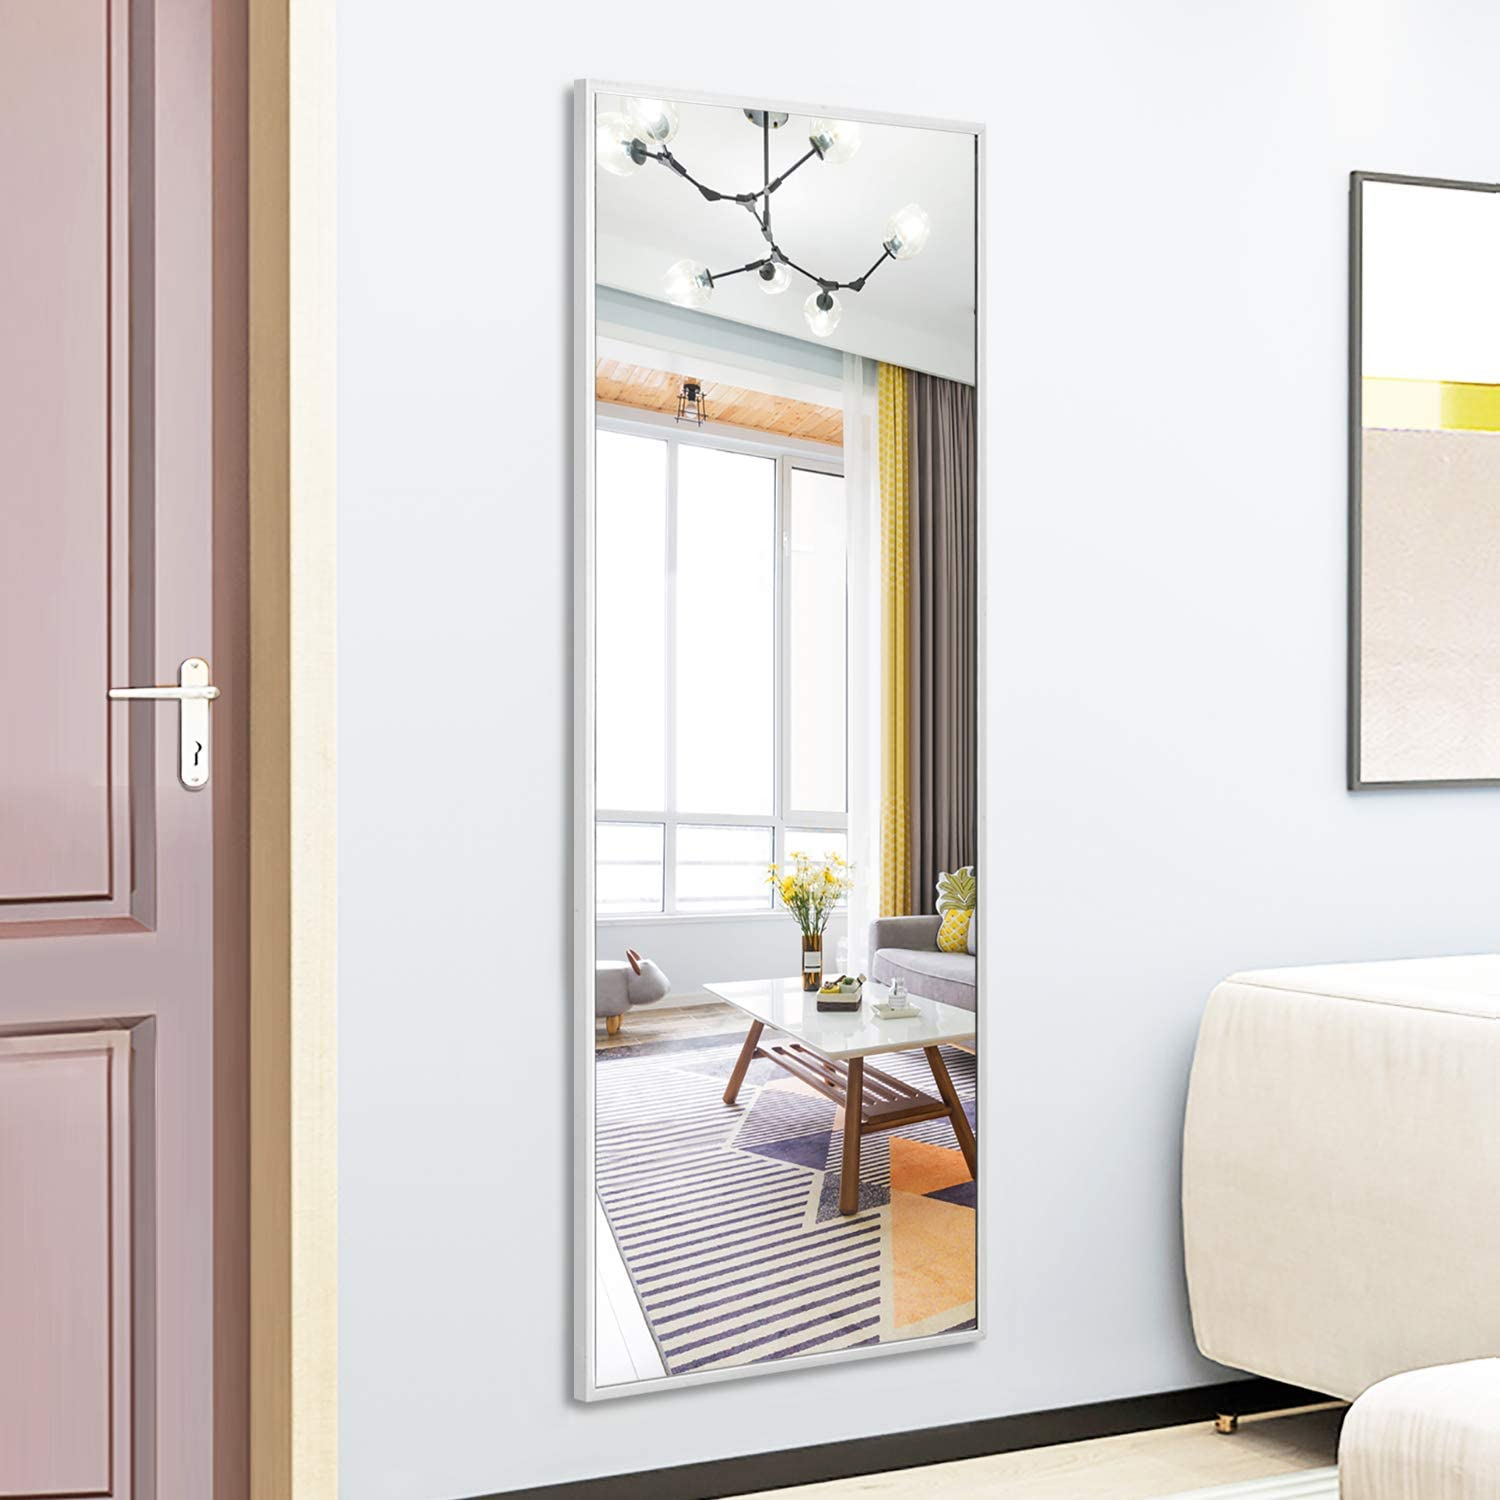 Neutype Wall Mounted Full Length Mirror 51x16 Inch Door Mirror Sleek Brushed Frame Dressing Mirror Floor Mirror For Bathroom Bedroom Living Room Home Decor Glossy Silver Walmart Com Walmart Com